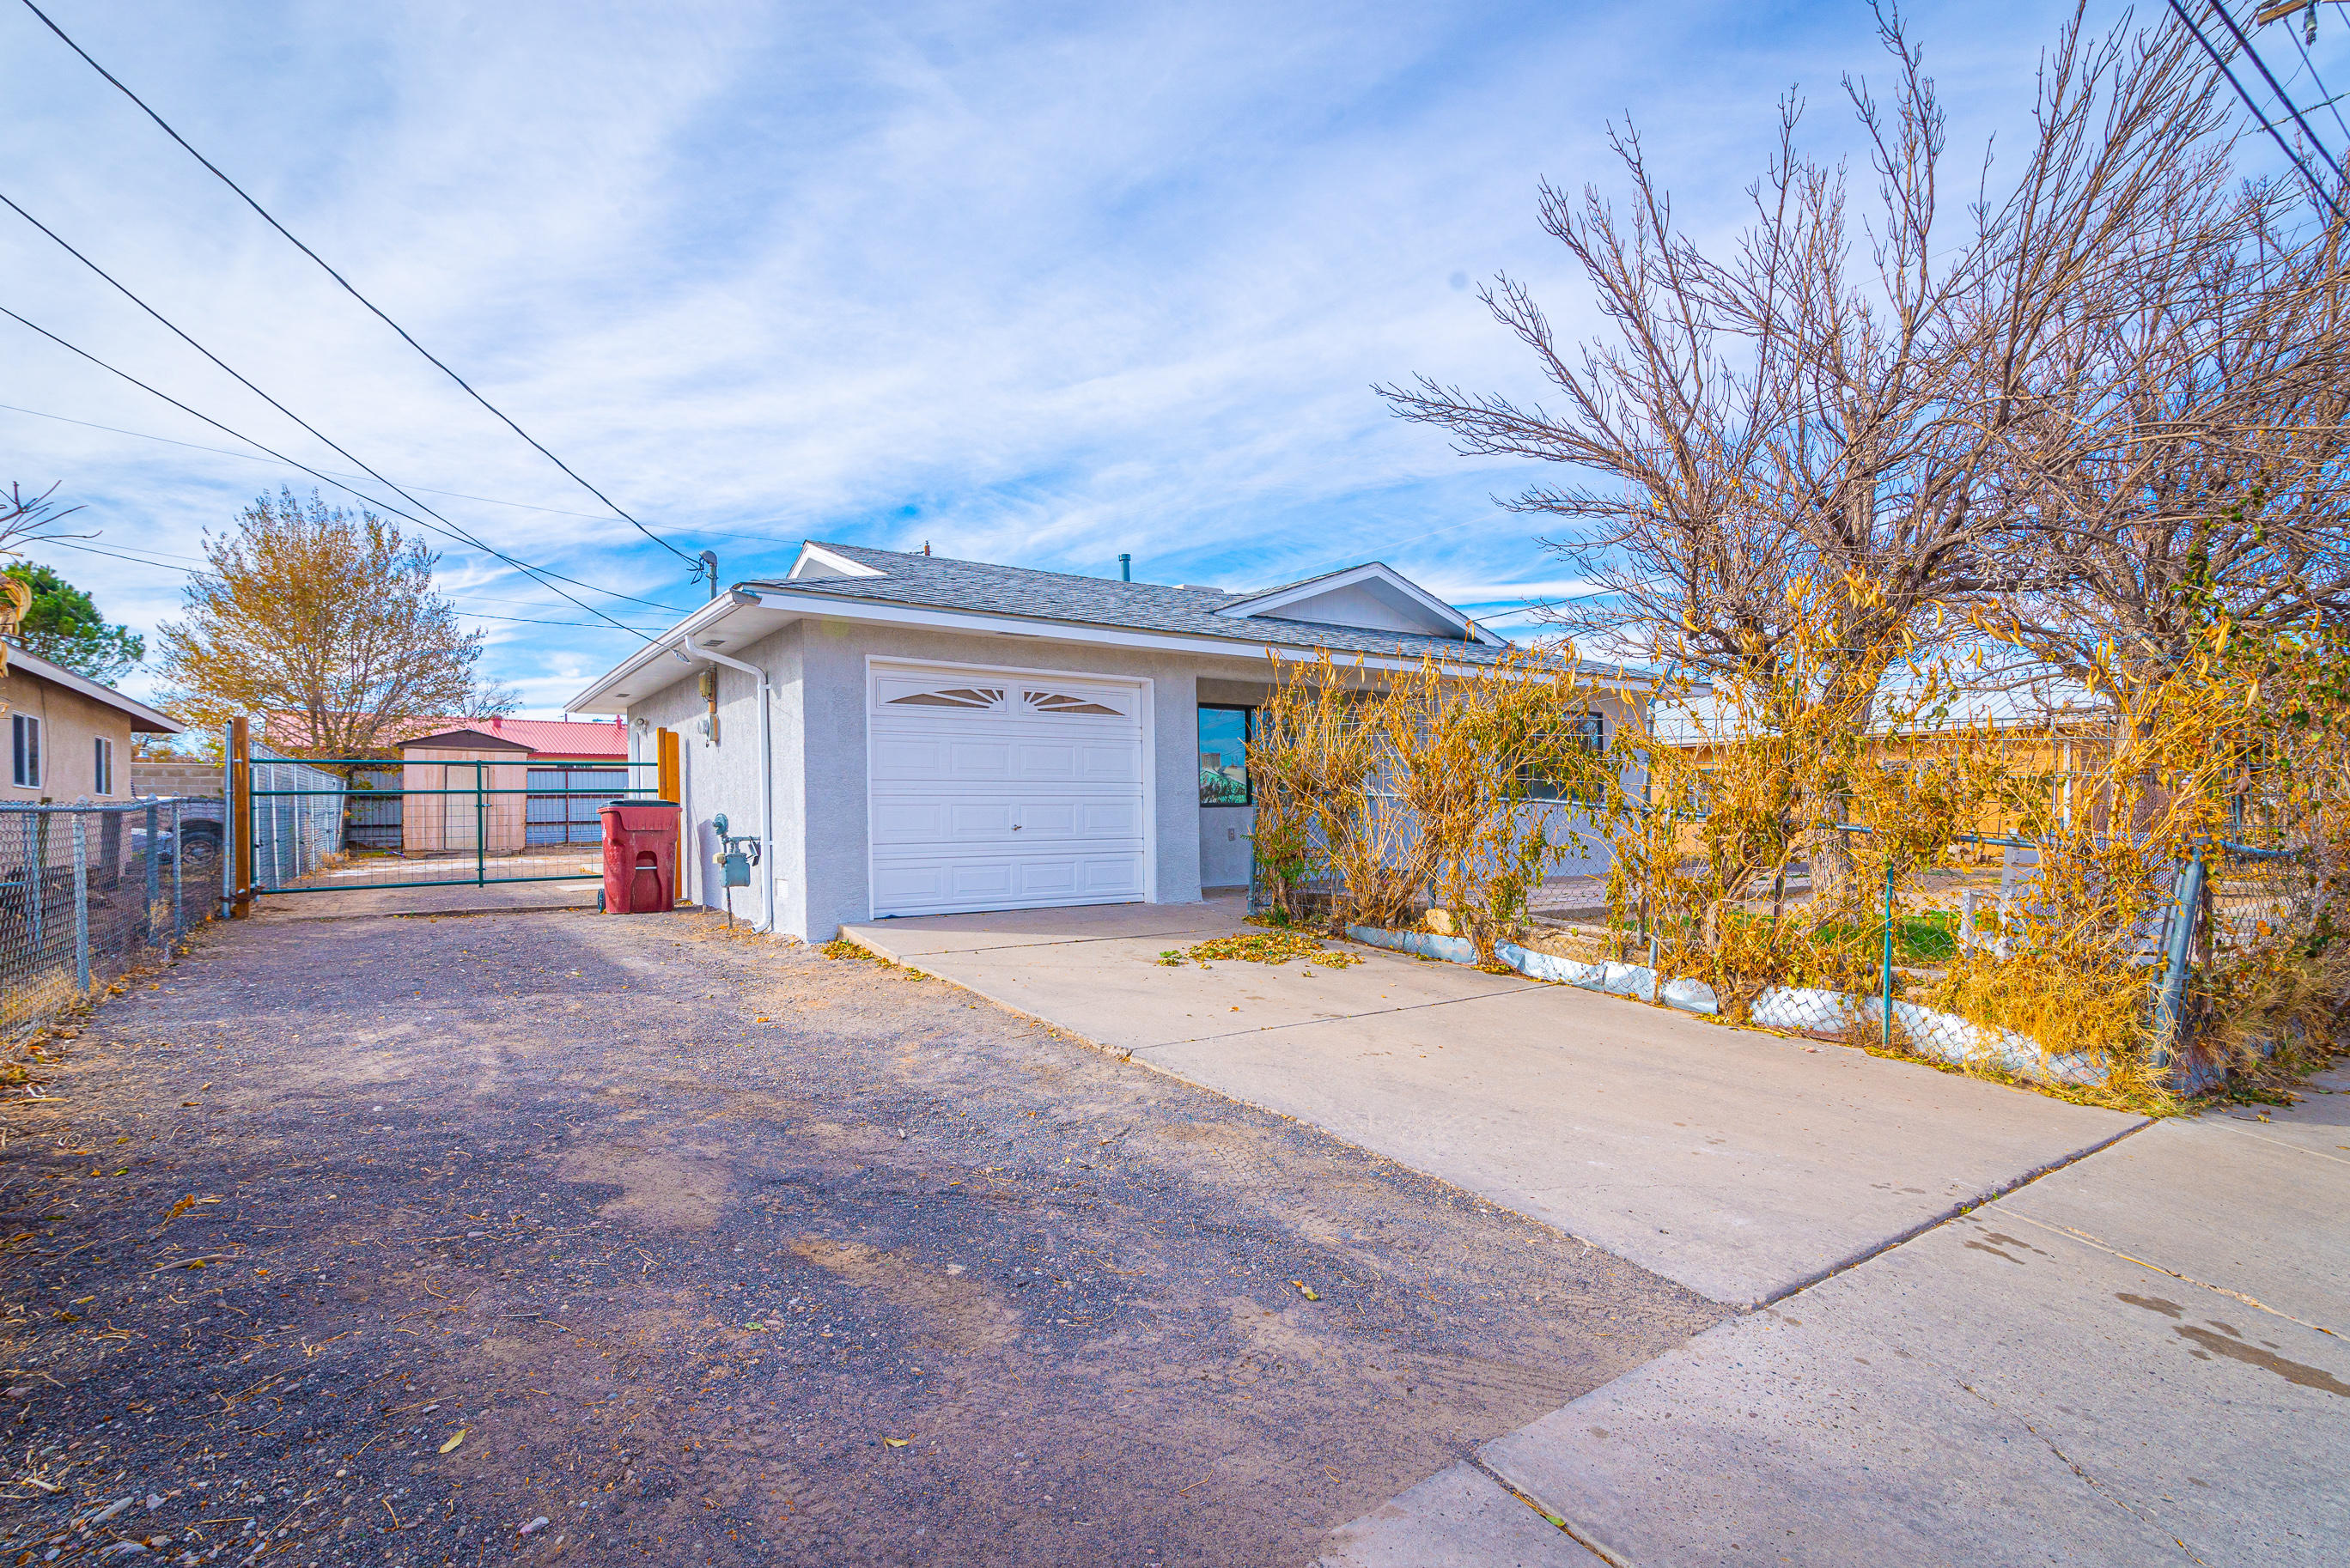 Excellent home awaits a new homeowner! Three bedroom home located in the center of Belen and conveniently close to freeway access! Larger city lot with storage shed, back yard access. Hardwood custom cabinets, stainless steel appliances, ceiling fans.  Must see!